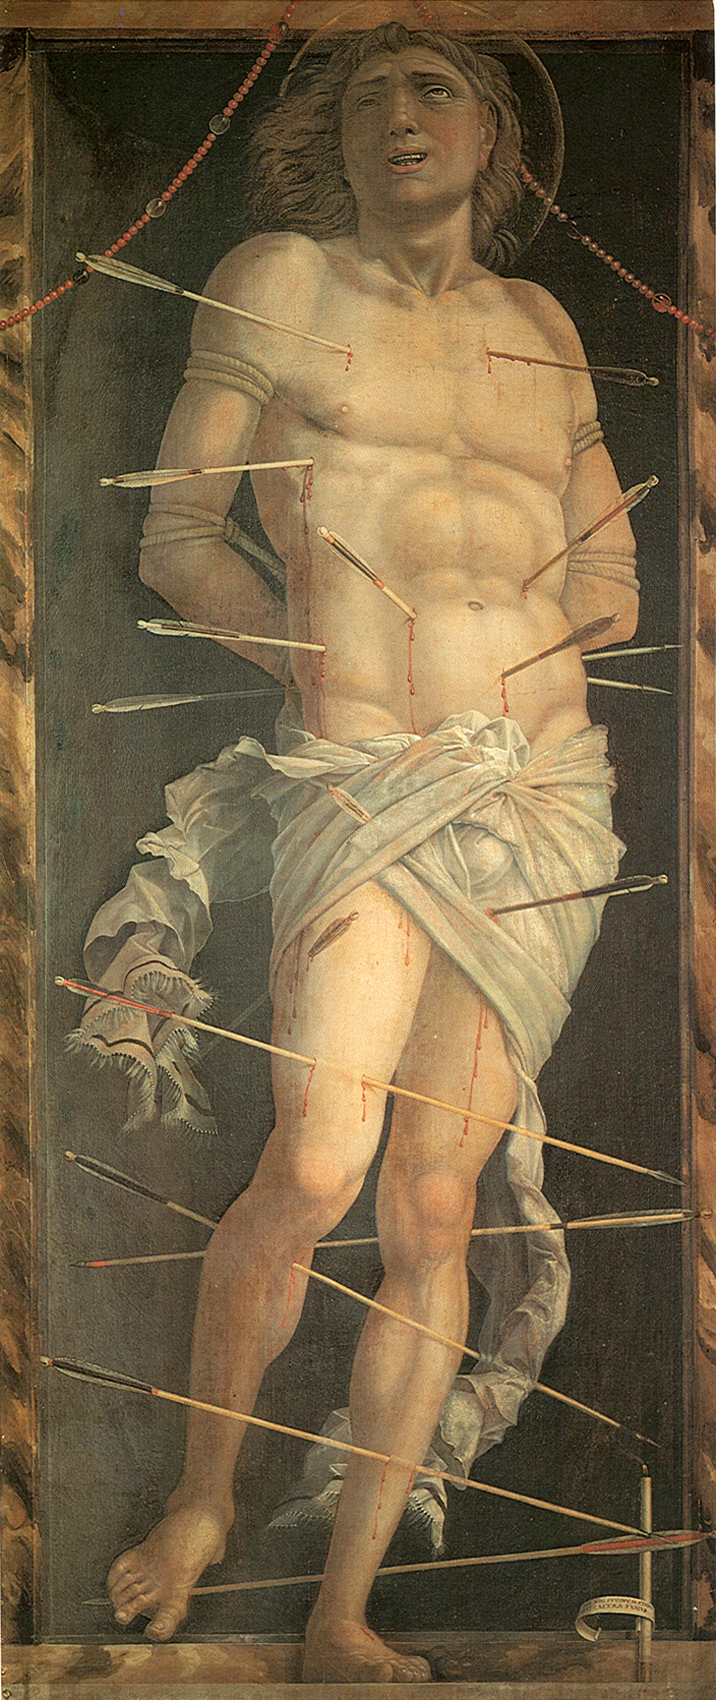 https://upload.wikimedia.org/wikipedia/commons/a/aa/St_Sebastian_3_Mantegna.jpg